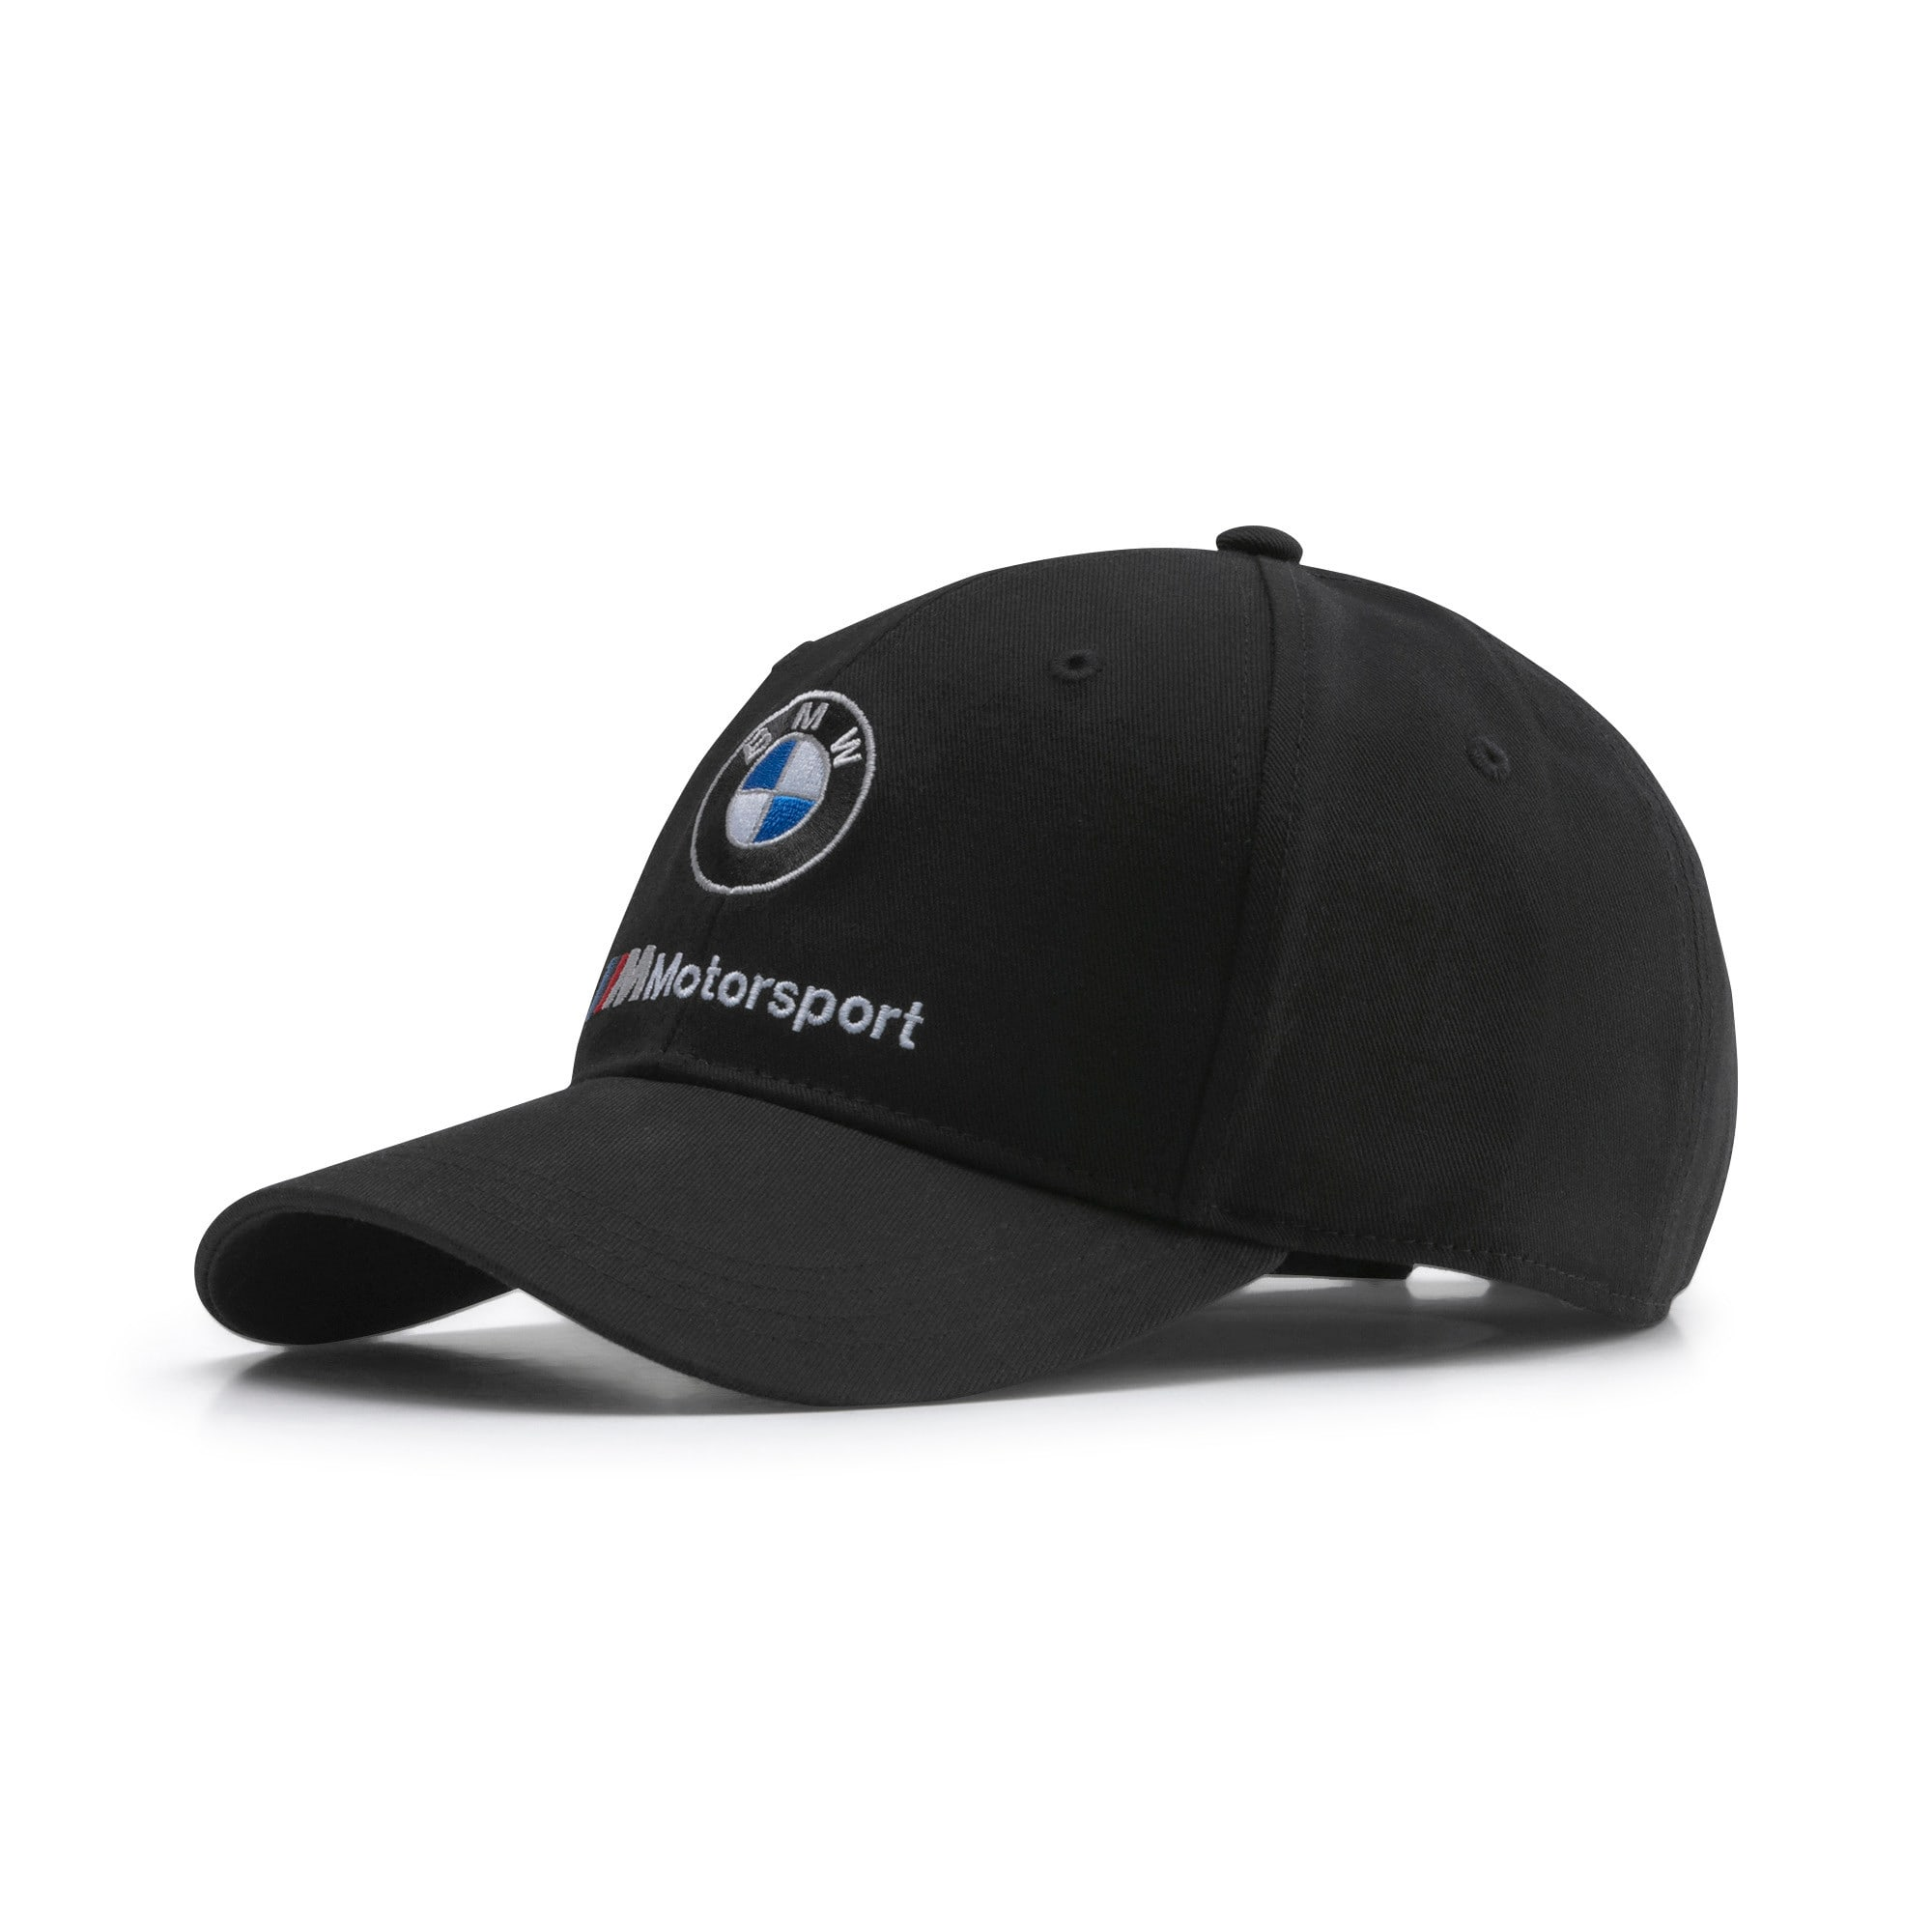 Thumbnail 1 of BMW M Motorsport Baseball Cap, Puma Black, medium